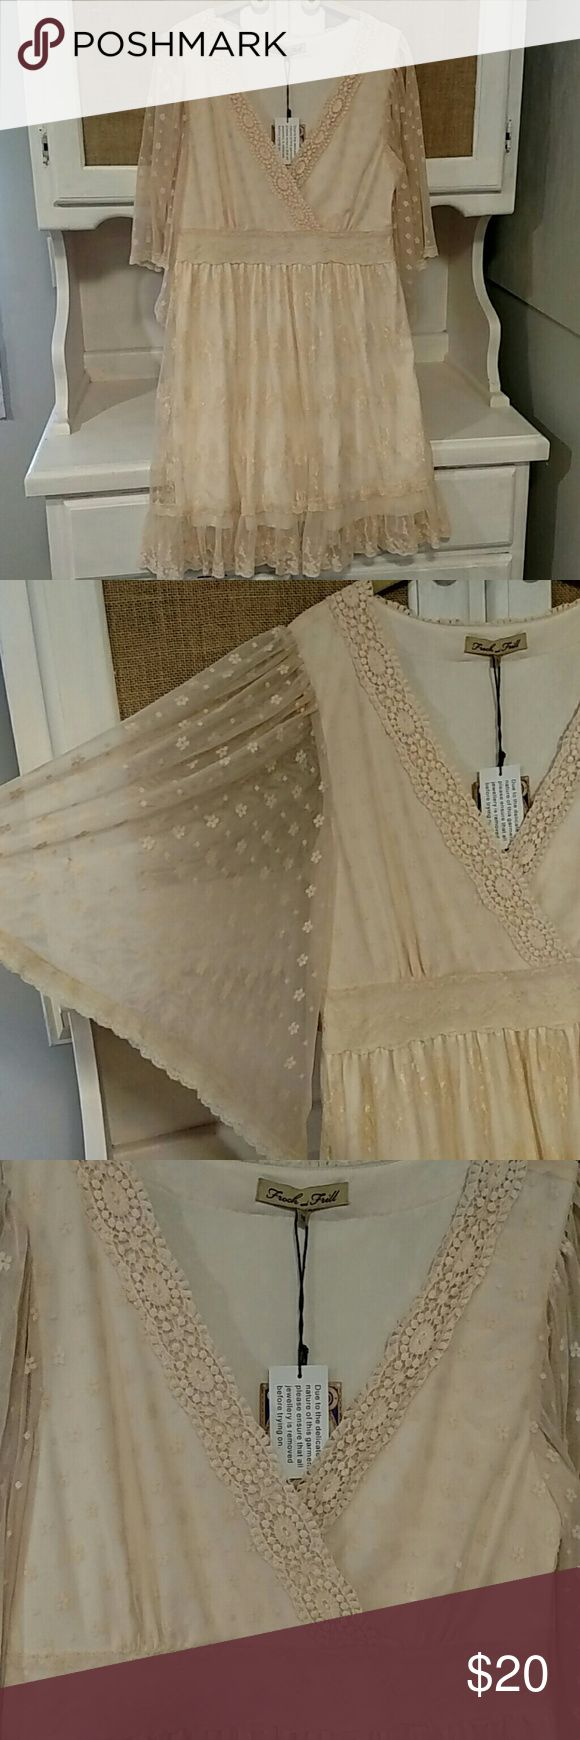 """Frock and frill dress Lace and so flowy and girly. Says size 14 but it is not it runs small I would say 10-12 for best fit. Chest is 18"""" under bust is 16"""" has a side zipper and length is 36"""". Still has tags attached. Would make a great bridesmaid dress or wedding shower dress etc....pics really don't do it justice its gorgeous! Dresses Mini"""